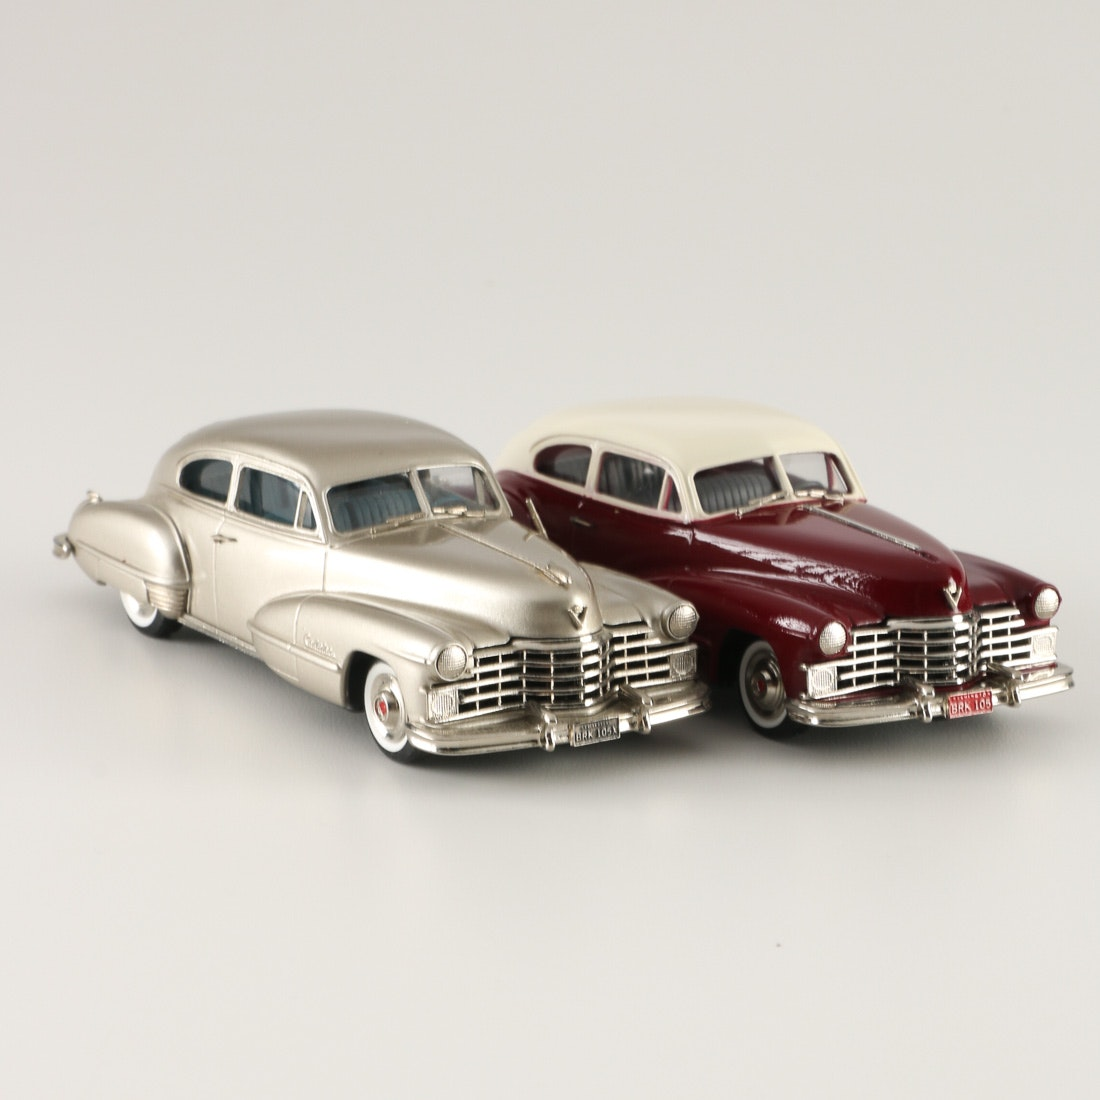 Pair Of 1947 Cadillac Series 62 Coupe Die-Cast Cars